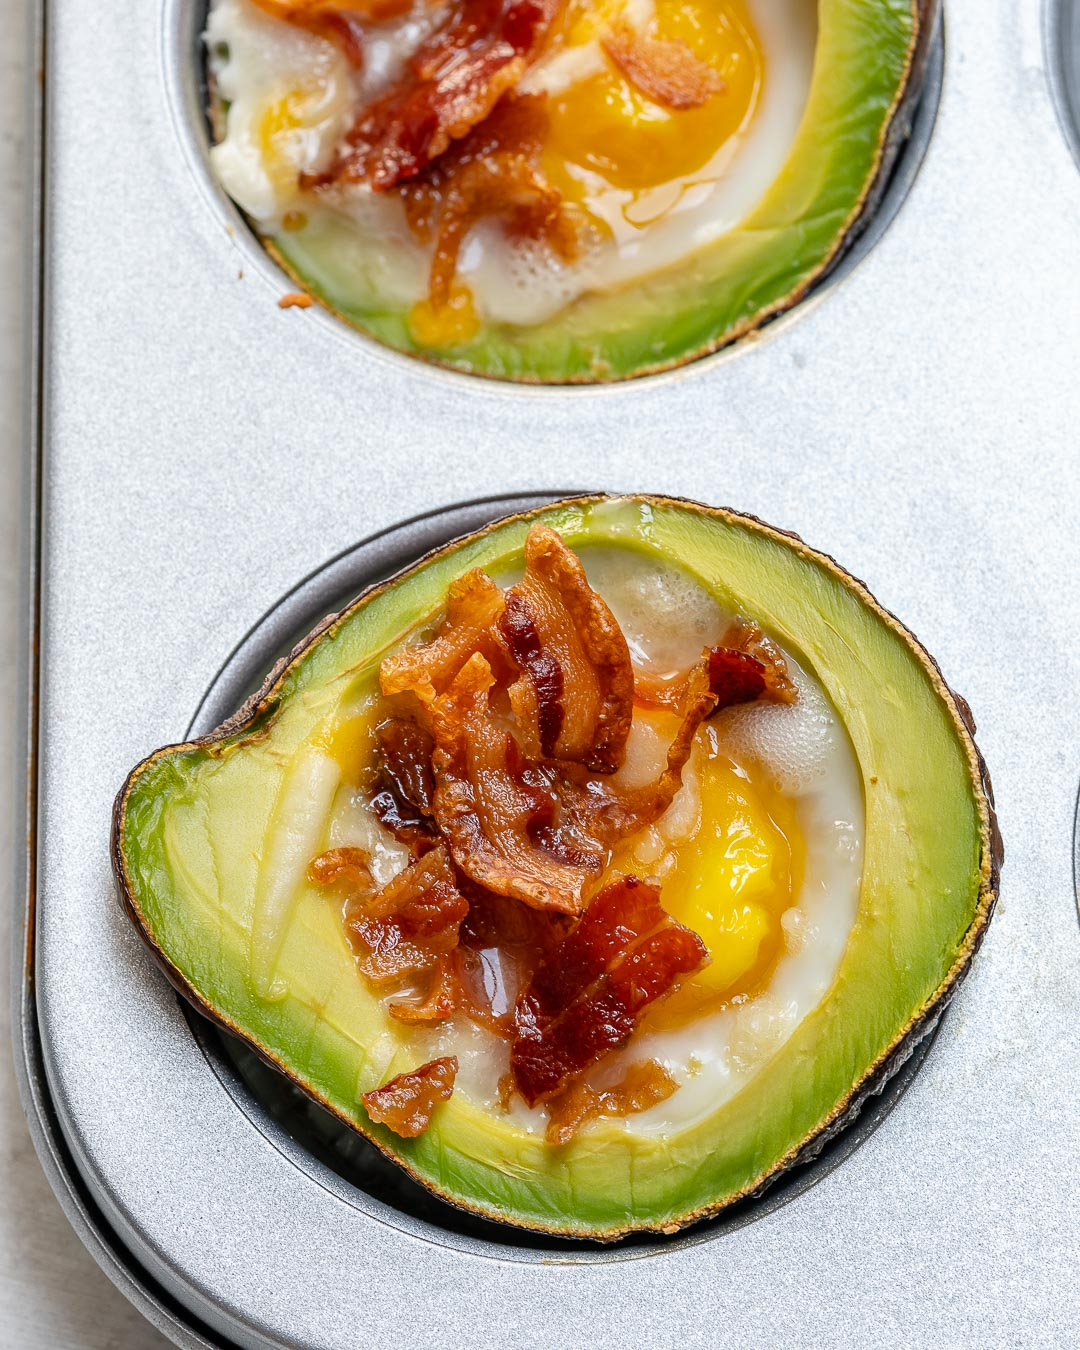 Boat Avocado Bacon and Eggs Recipe